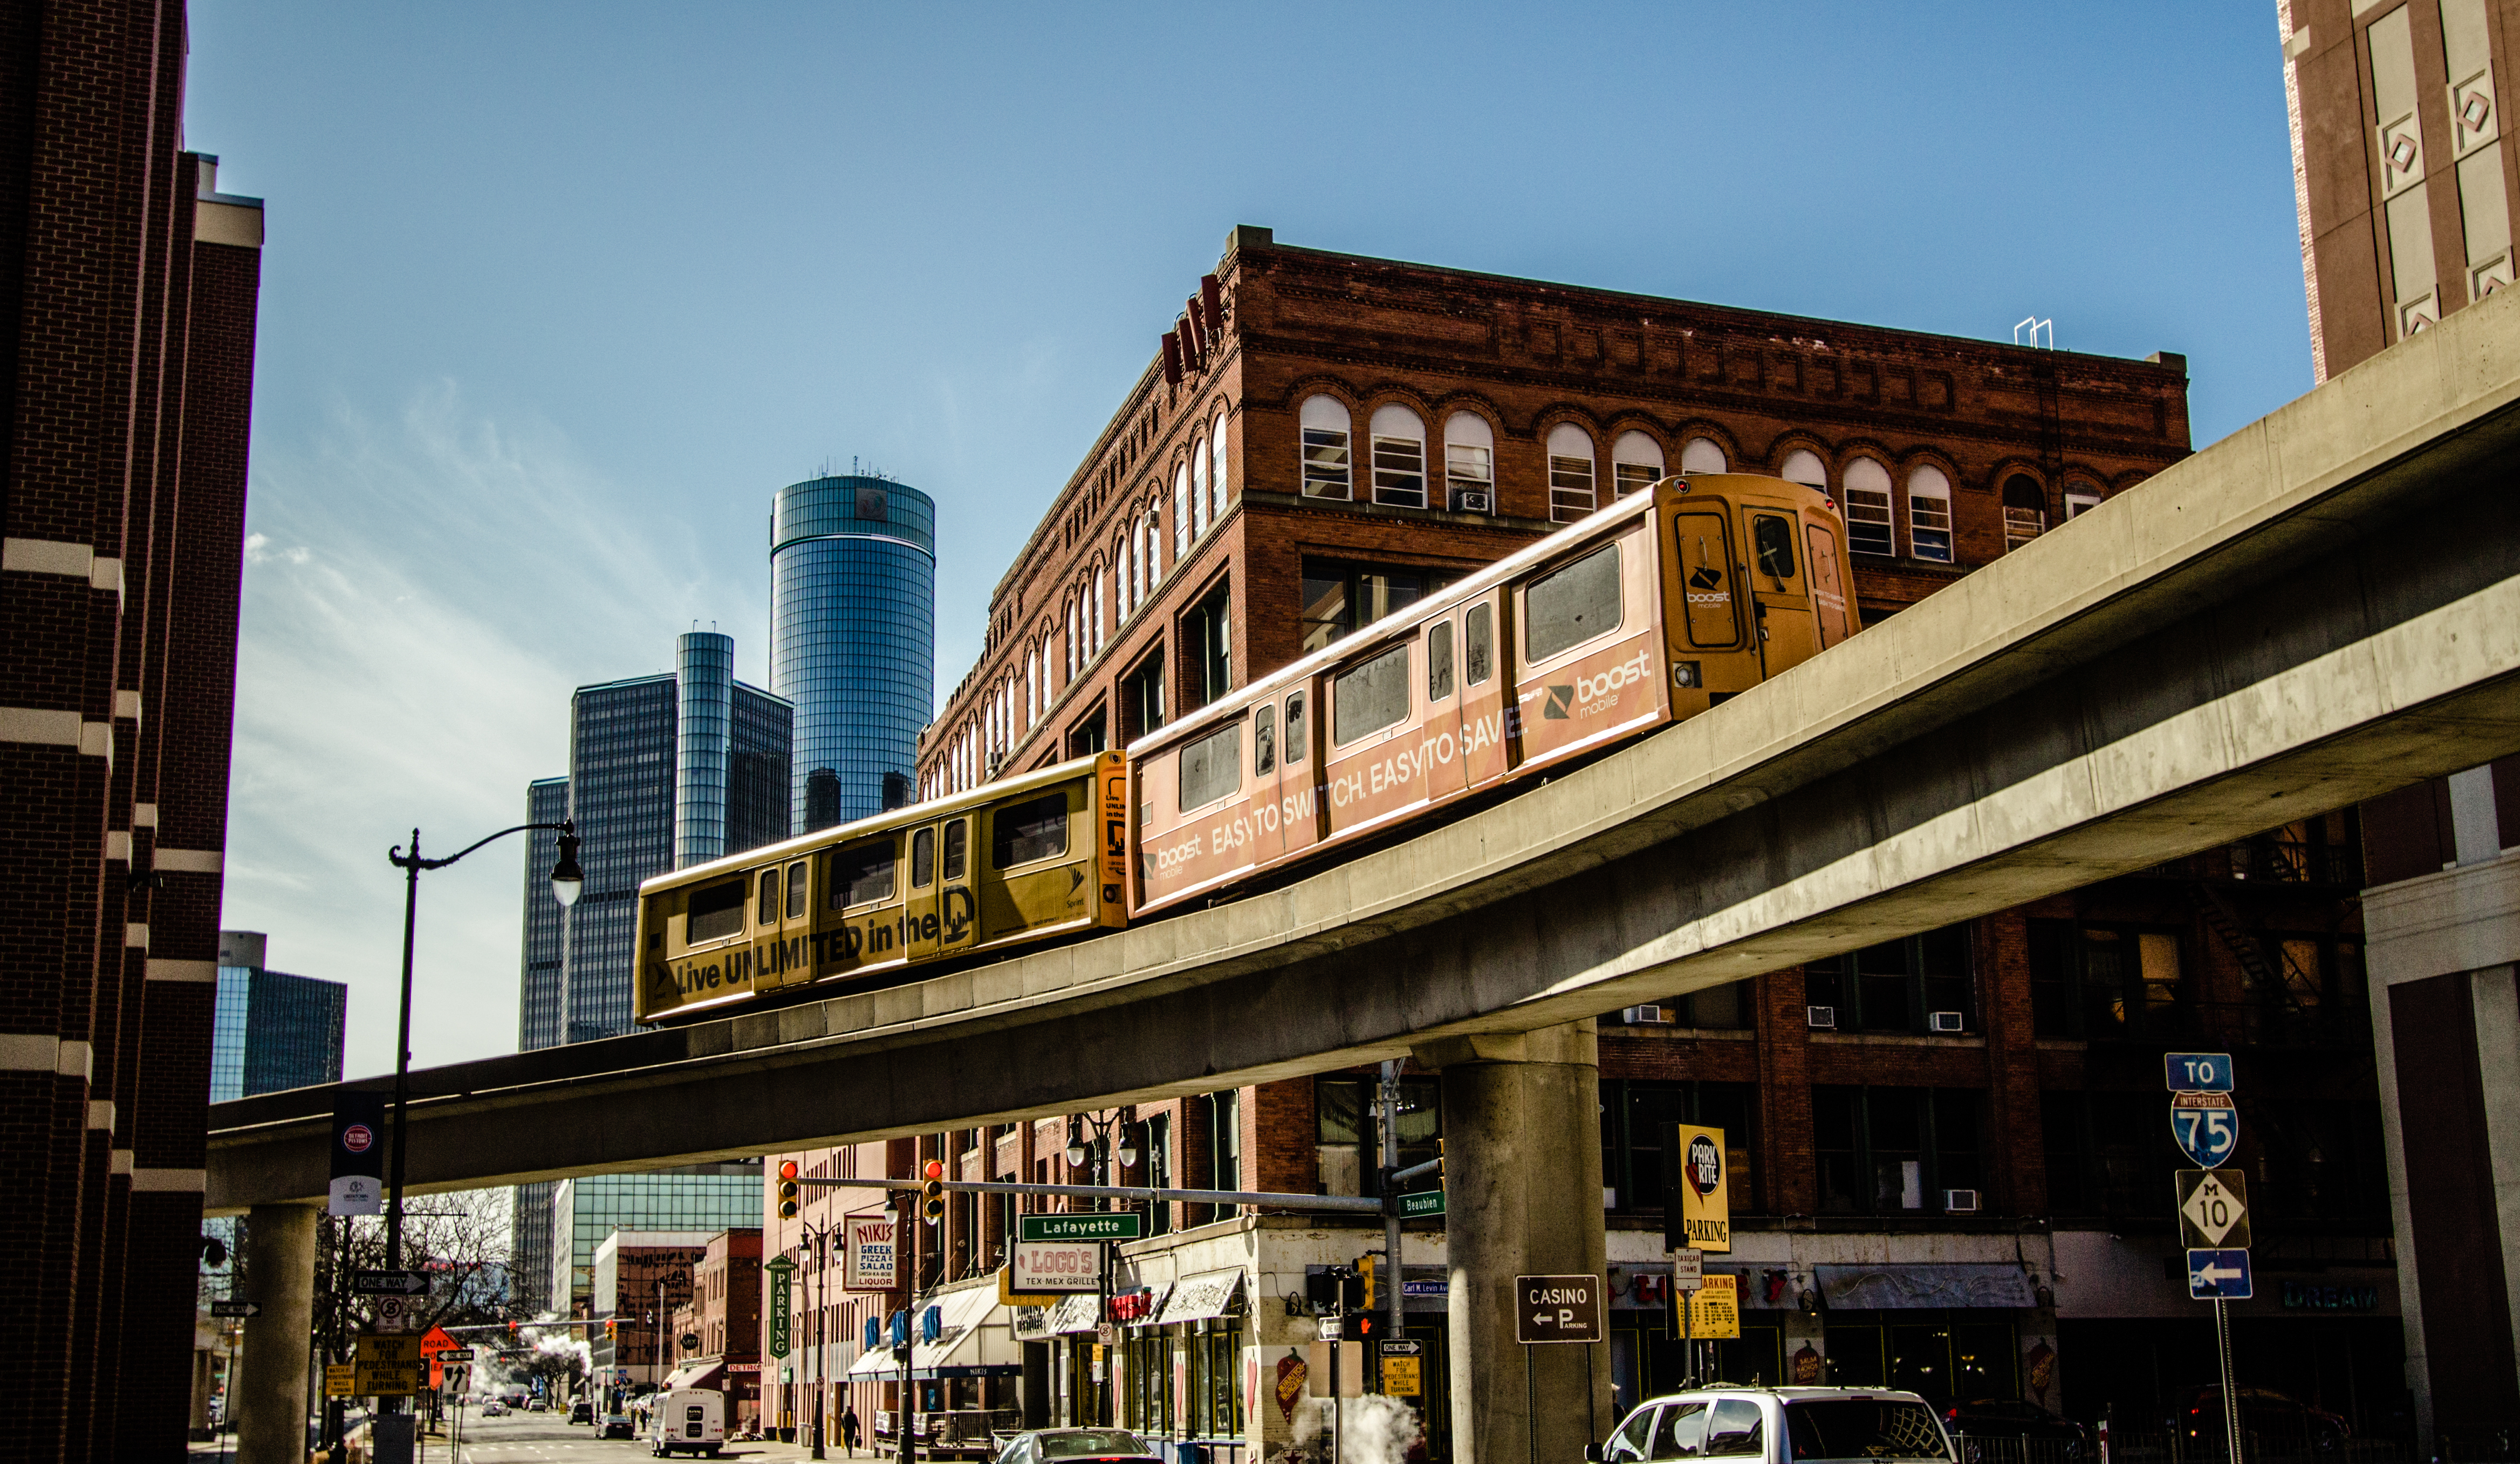 Detroit's elevated people mover moves diagonally across a busy downtown street.